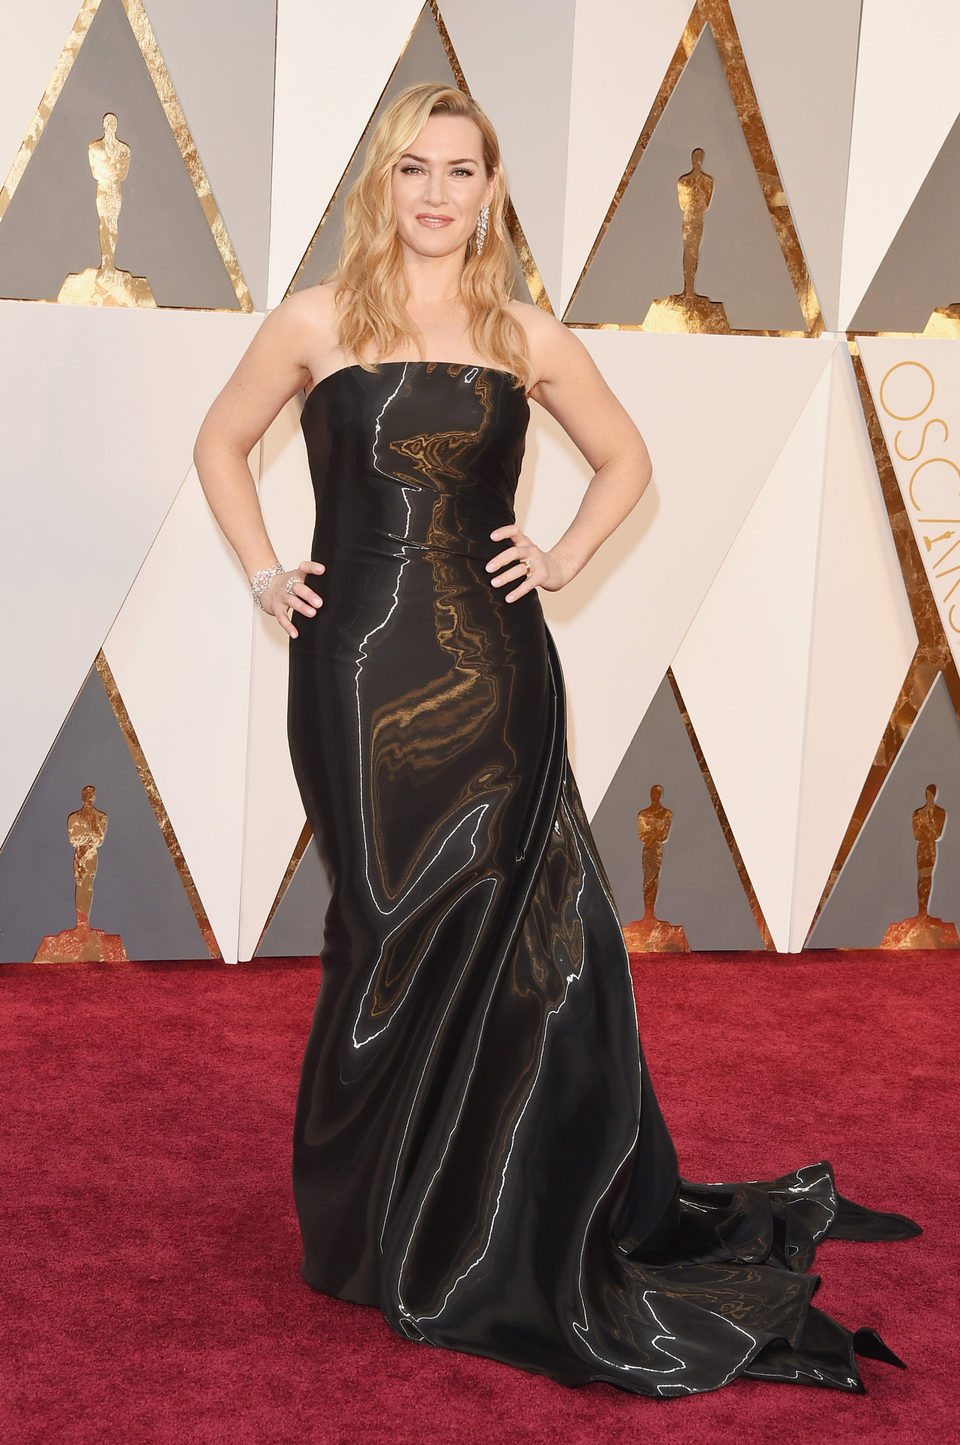 Kate Winslet at the Oscars 2016 red carpet